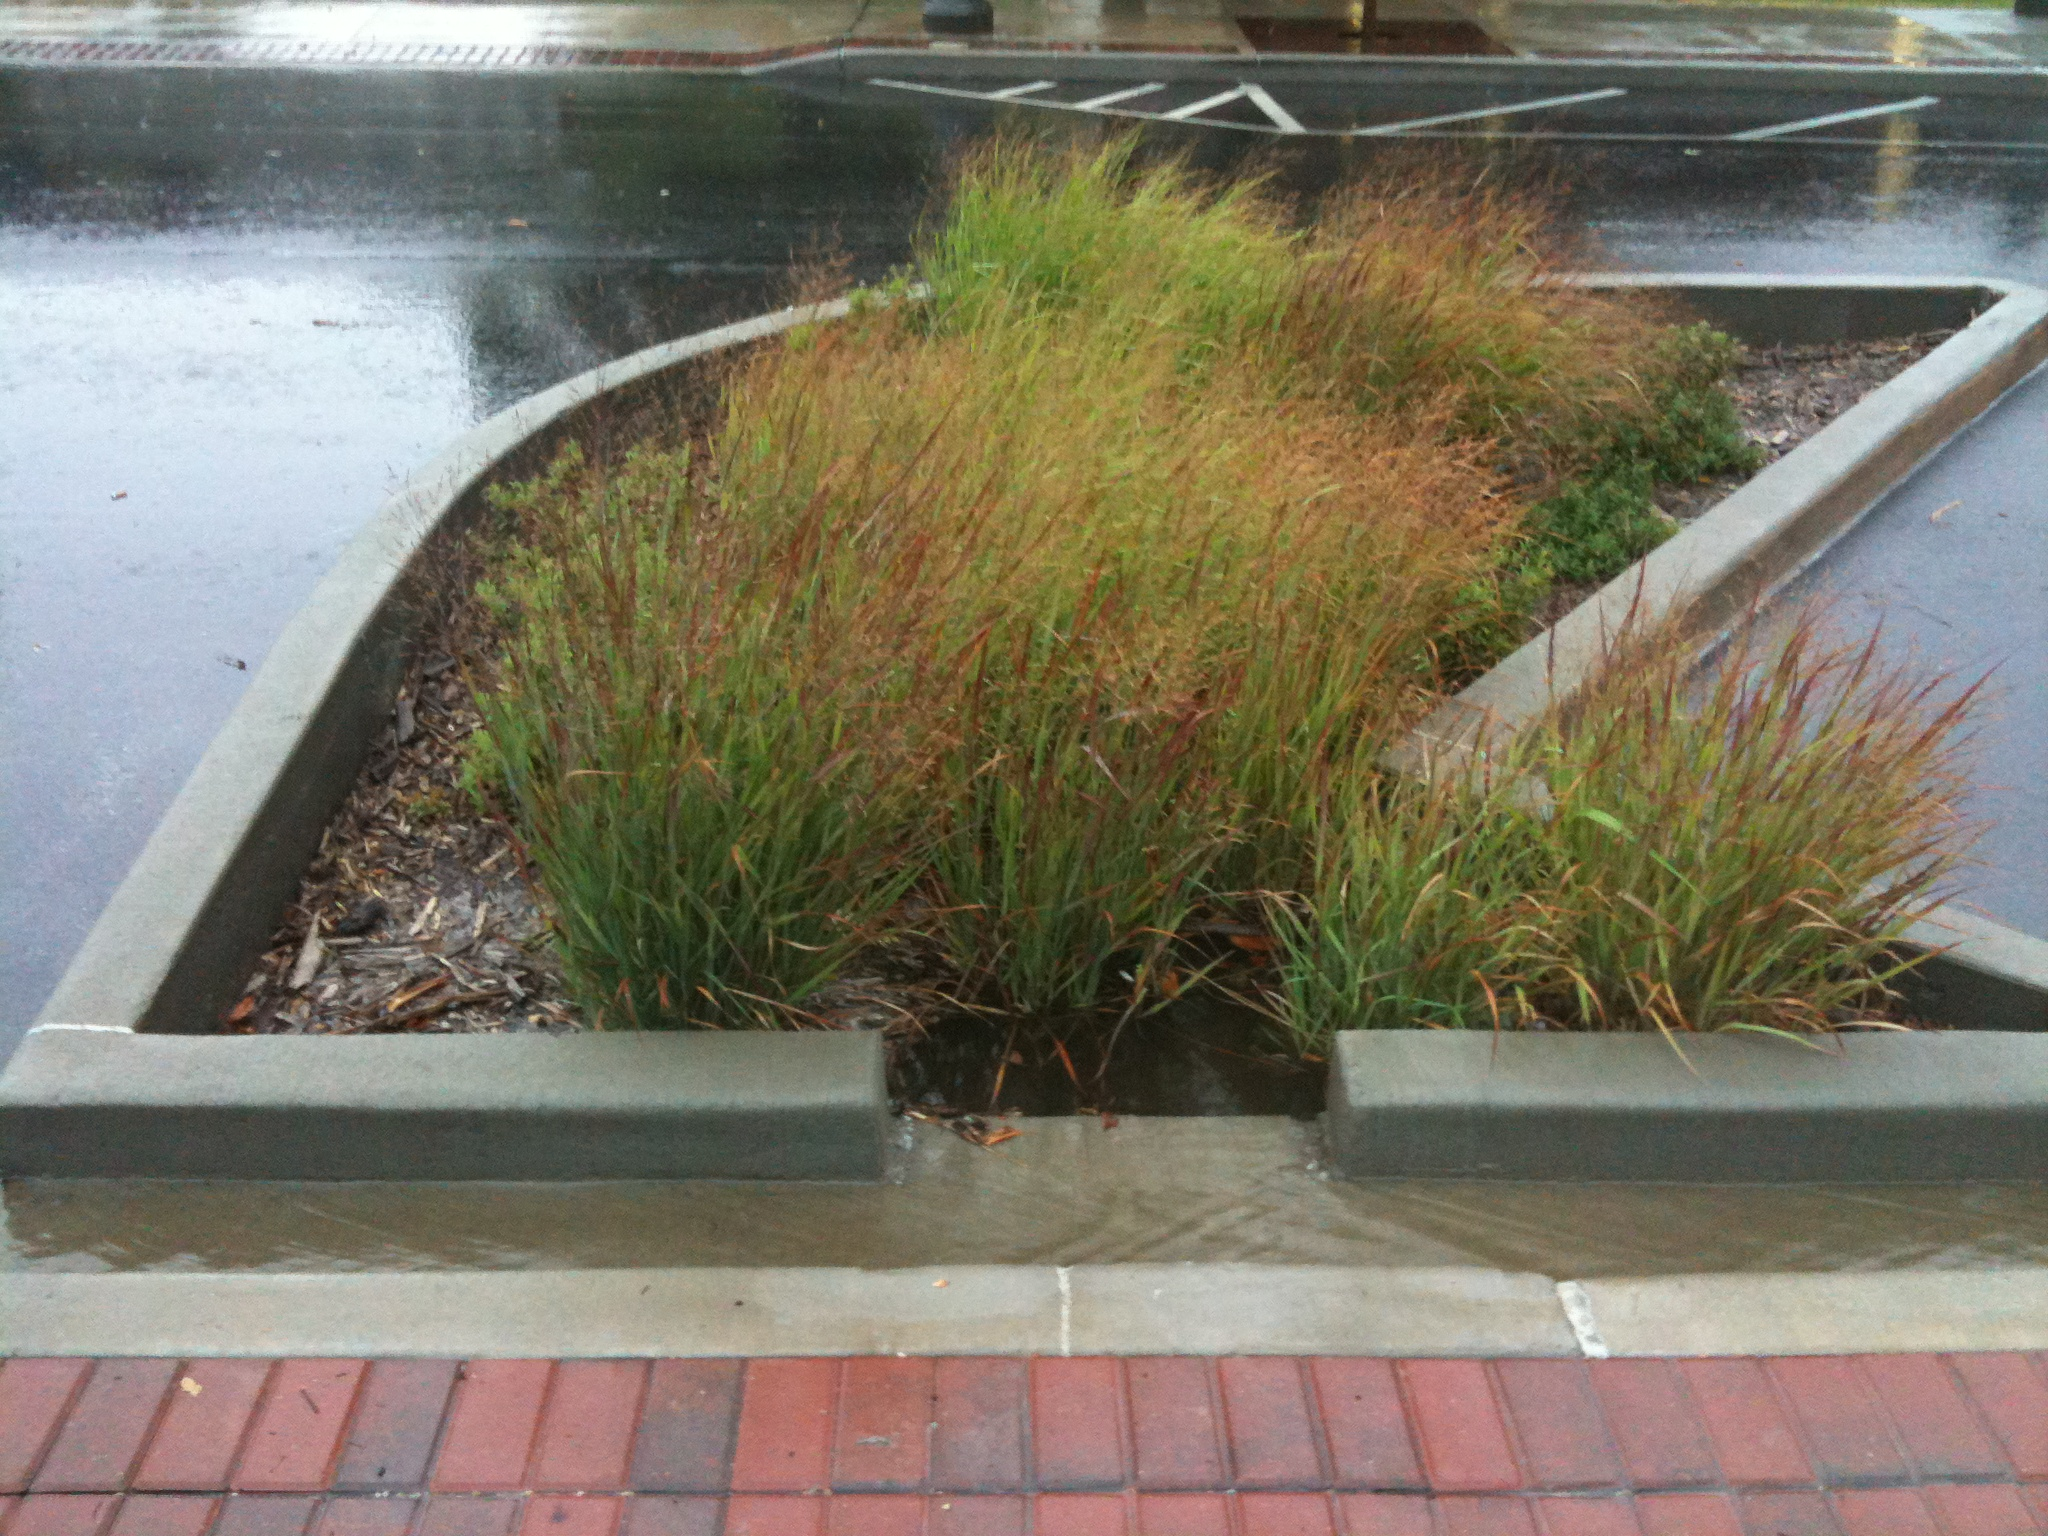 bioswale on block avenue during a rain event